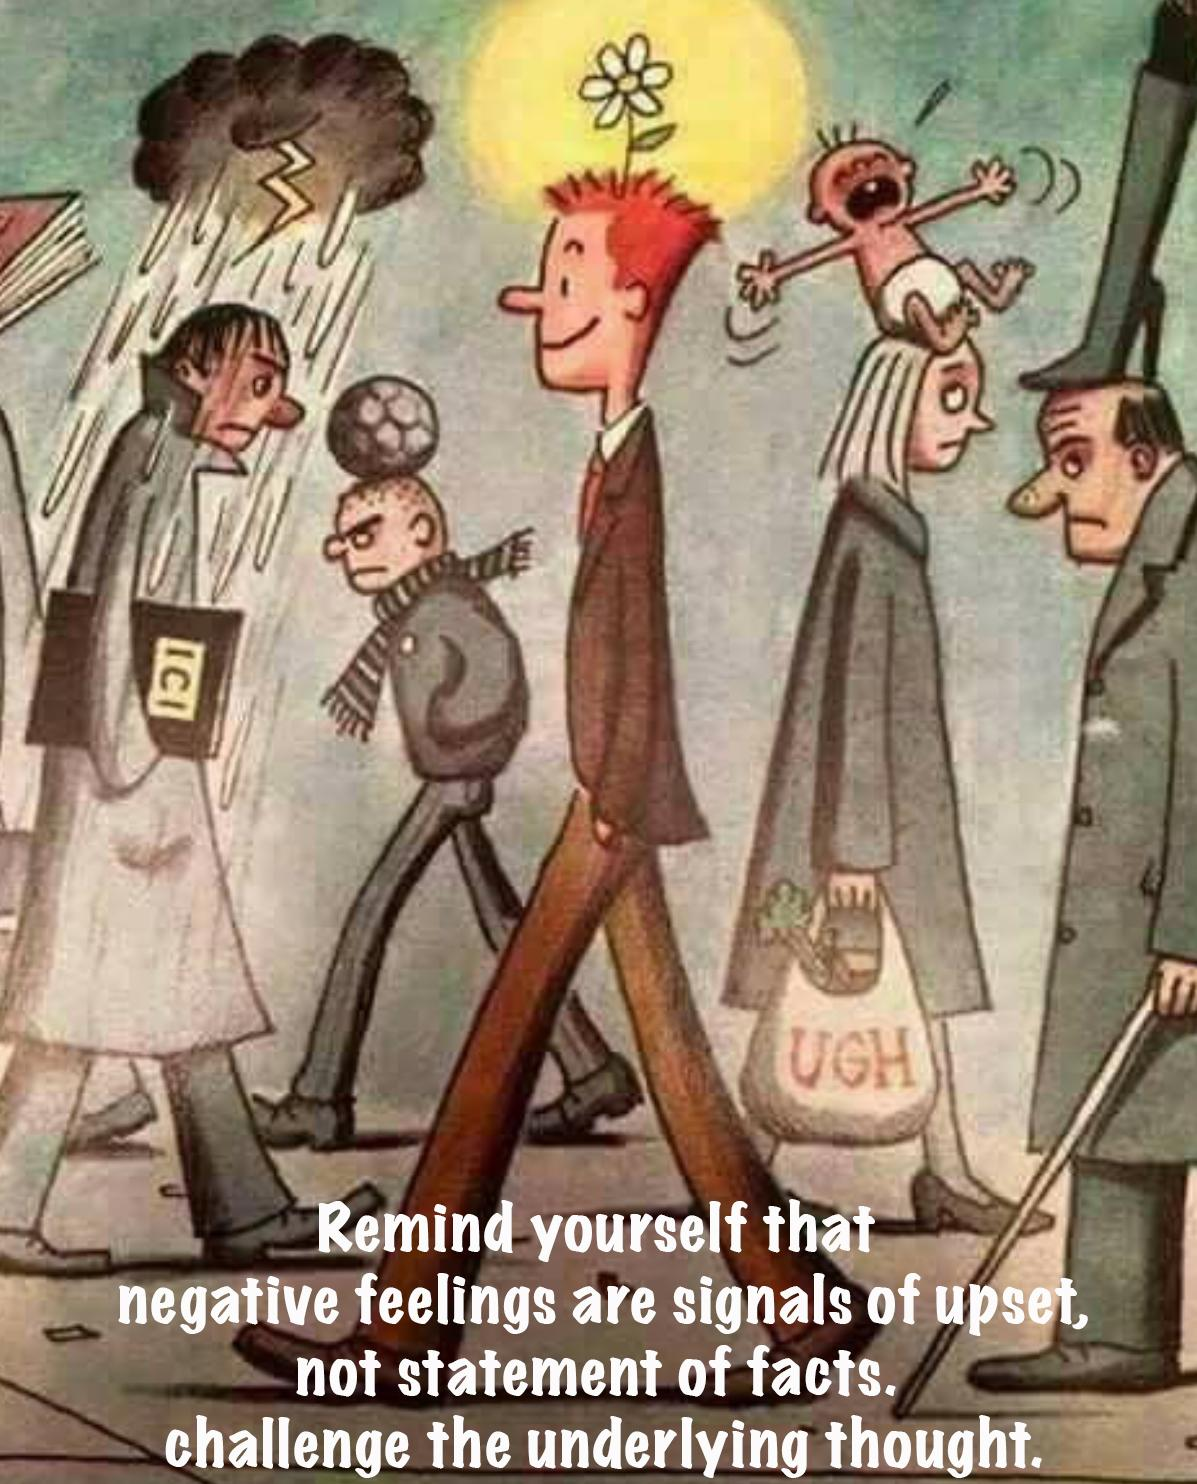 [Image]Remind Yourself That Negative Feelings Are Signals Of Upset, Not Statement Of Facts.